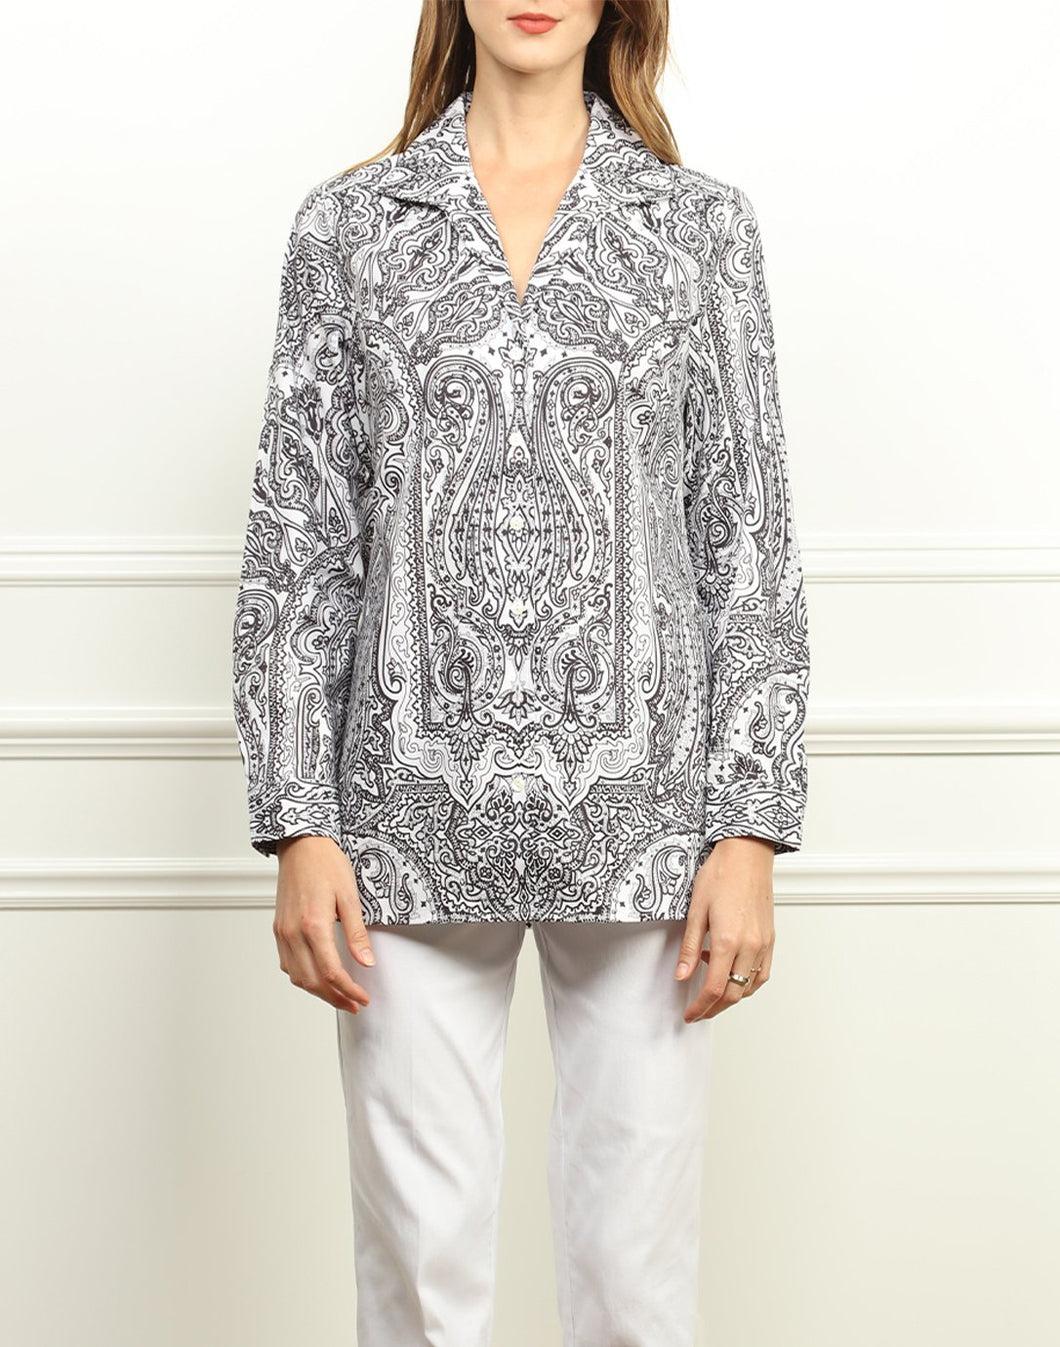 Katherine Classic Wing Collar Tunic In Black And White Paisley Print